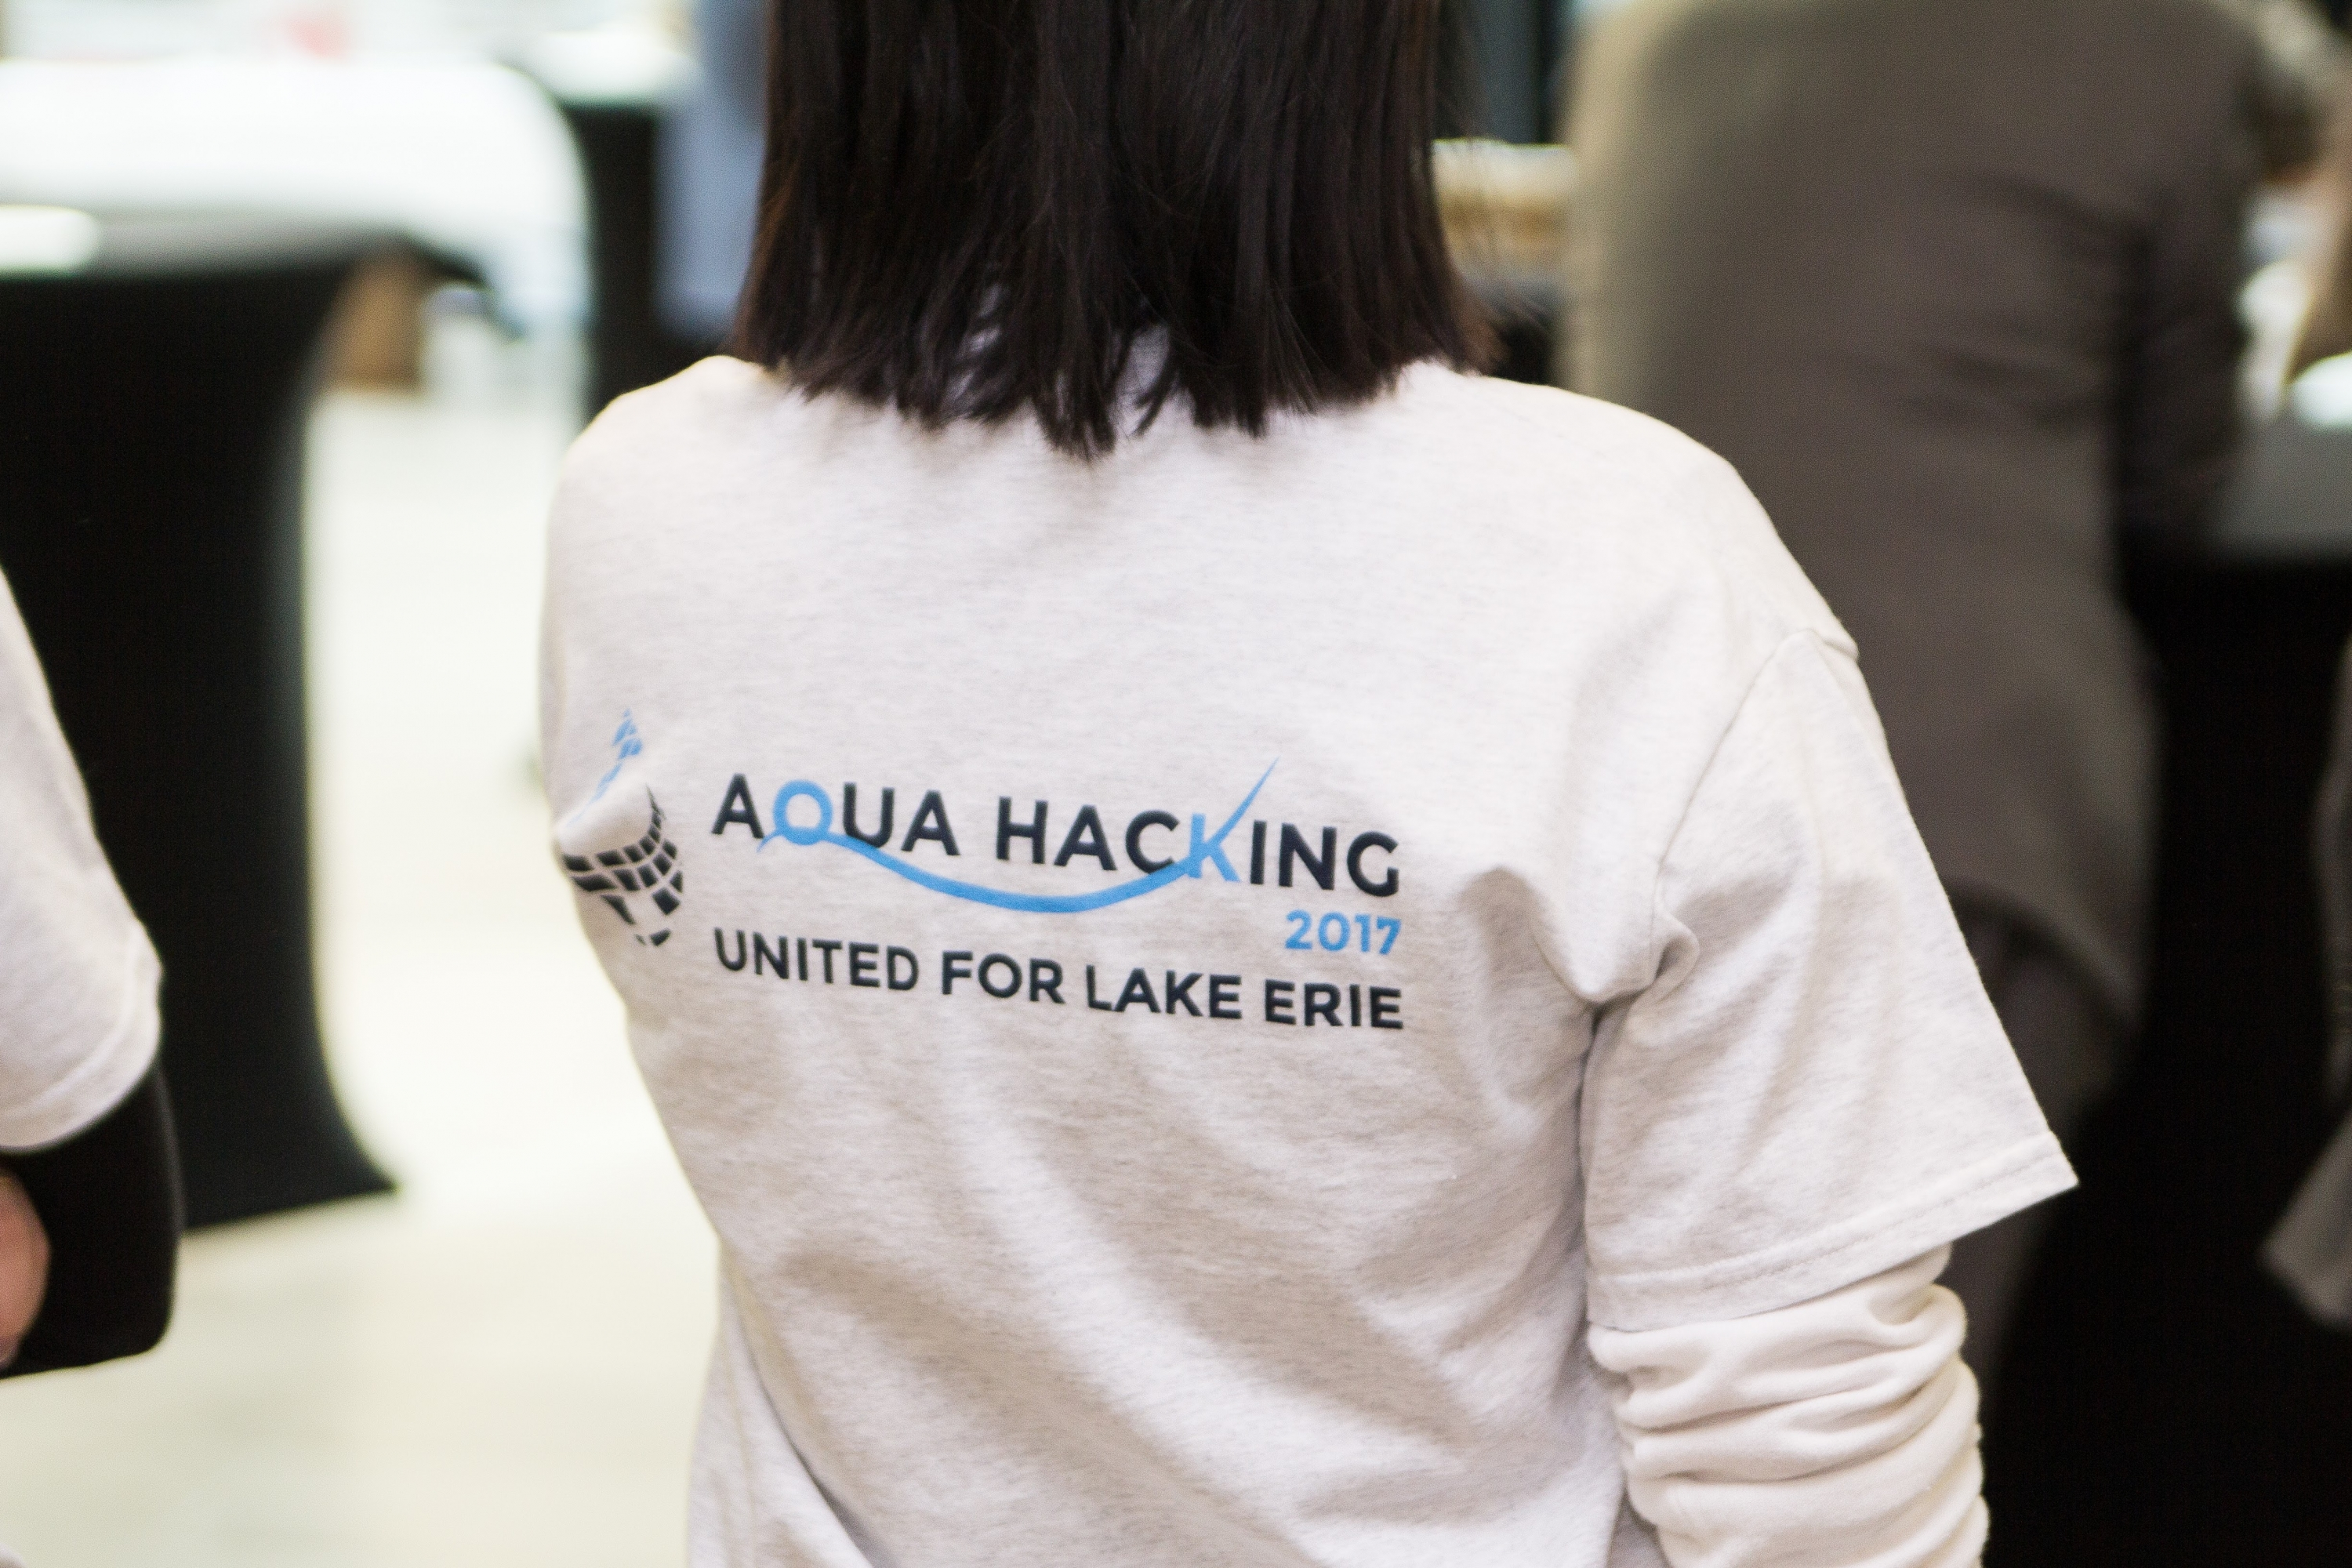 AquaHacking t-shirt logo